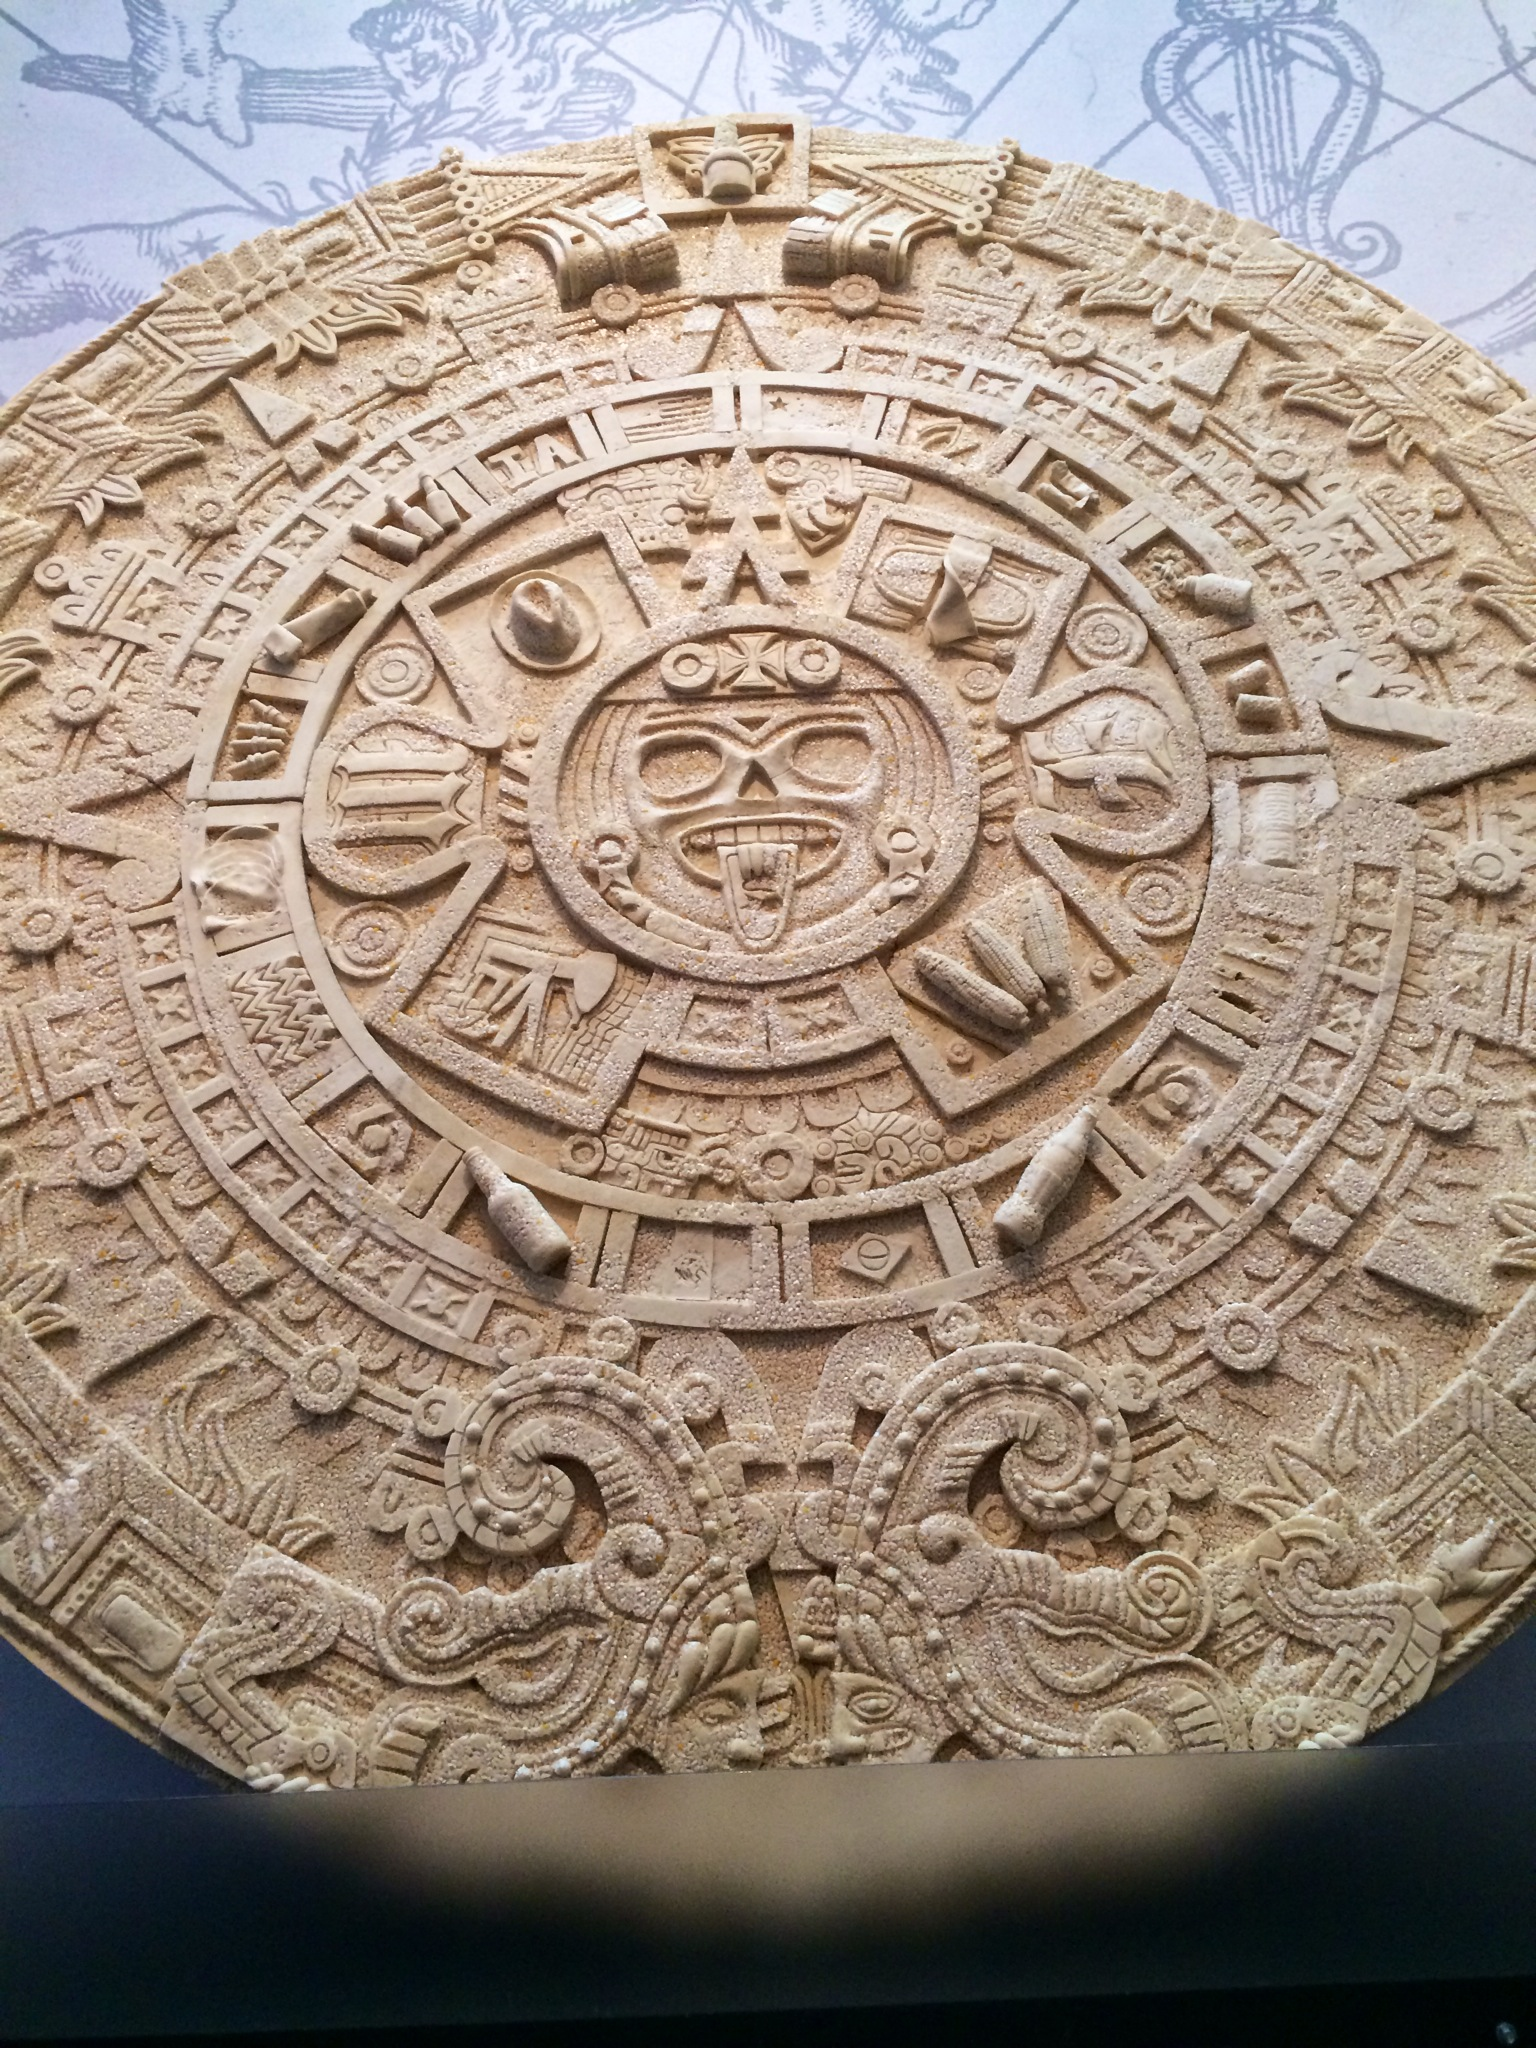 Avarice: Aztec calendar made of corn, with corn products hidden throughout. Can you find the coke bottles? The toothpaste?